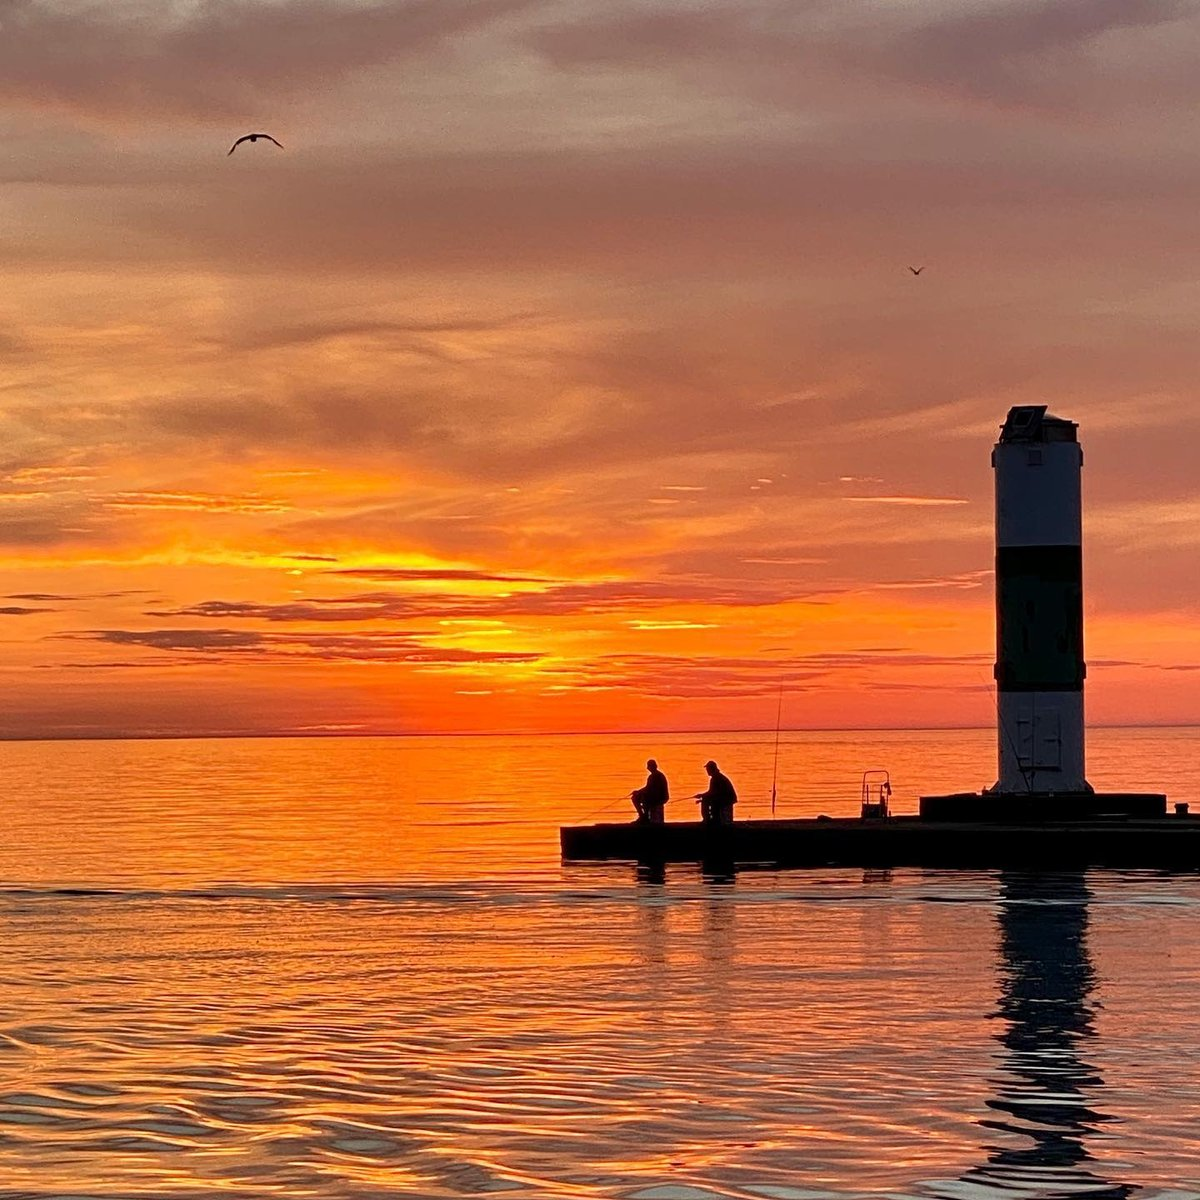 It was a gorgeous weekend across the Lake Michigan Beachtowns!  📸: @gr8tlakestrish #mibeachtowns #puremichigan #midwestmoment #westmichigan #sunset #fishing #adventure #swmichigan #southhavenmi #southhaven #visitsouthhaven